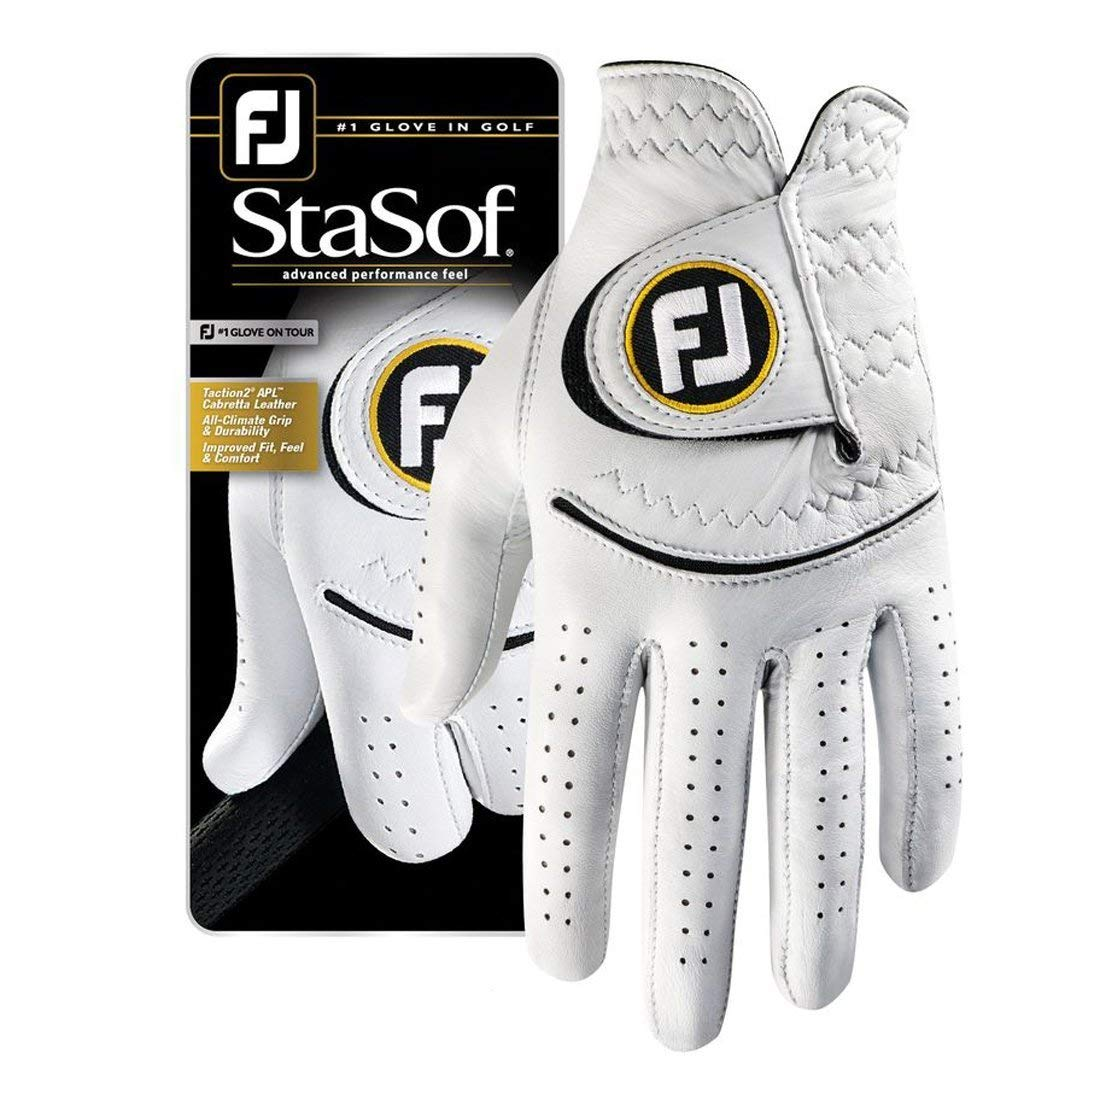 FootJoy StaSof Golf Glove Review